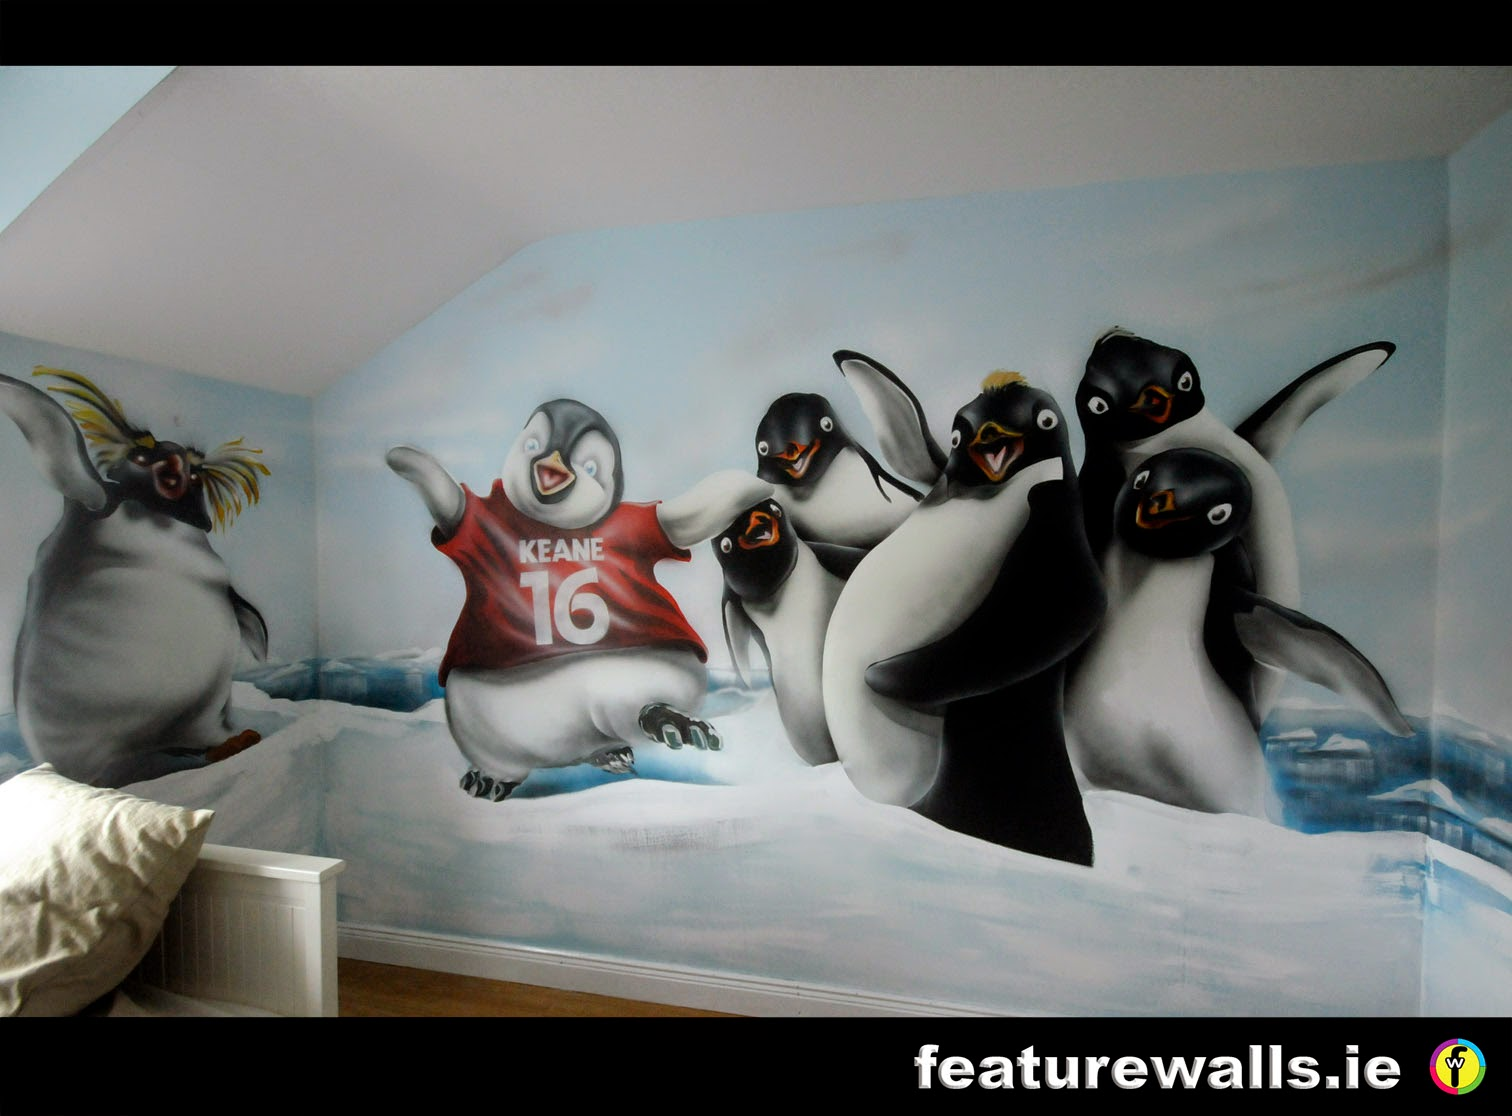 mural painting professionals featurewalls ie hand painted kids kids bedroom mural space wall hand painted mural by feature walls irish mural artists